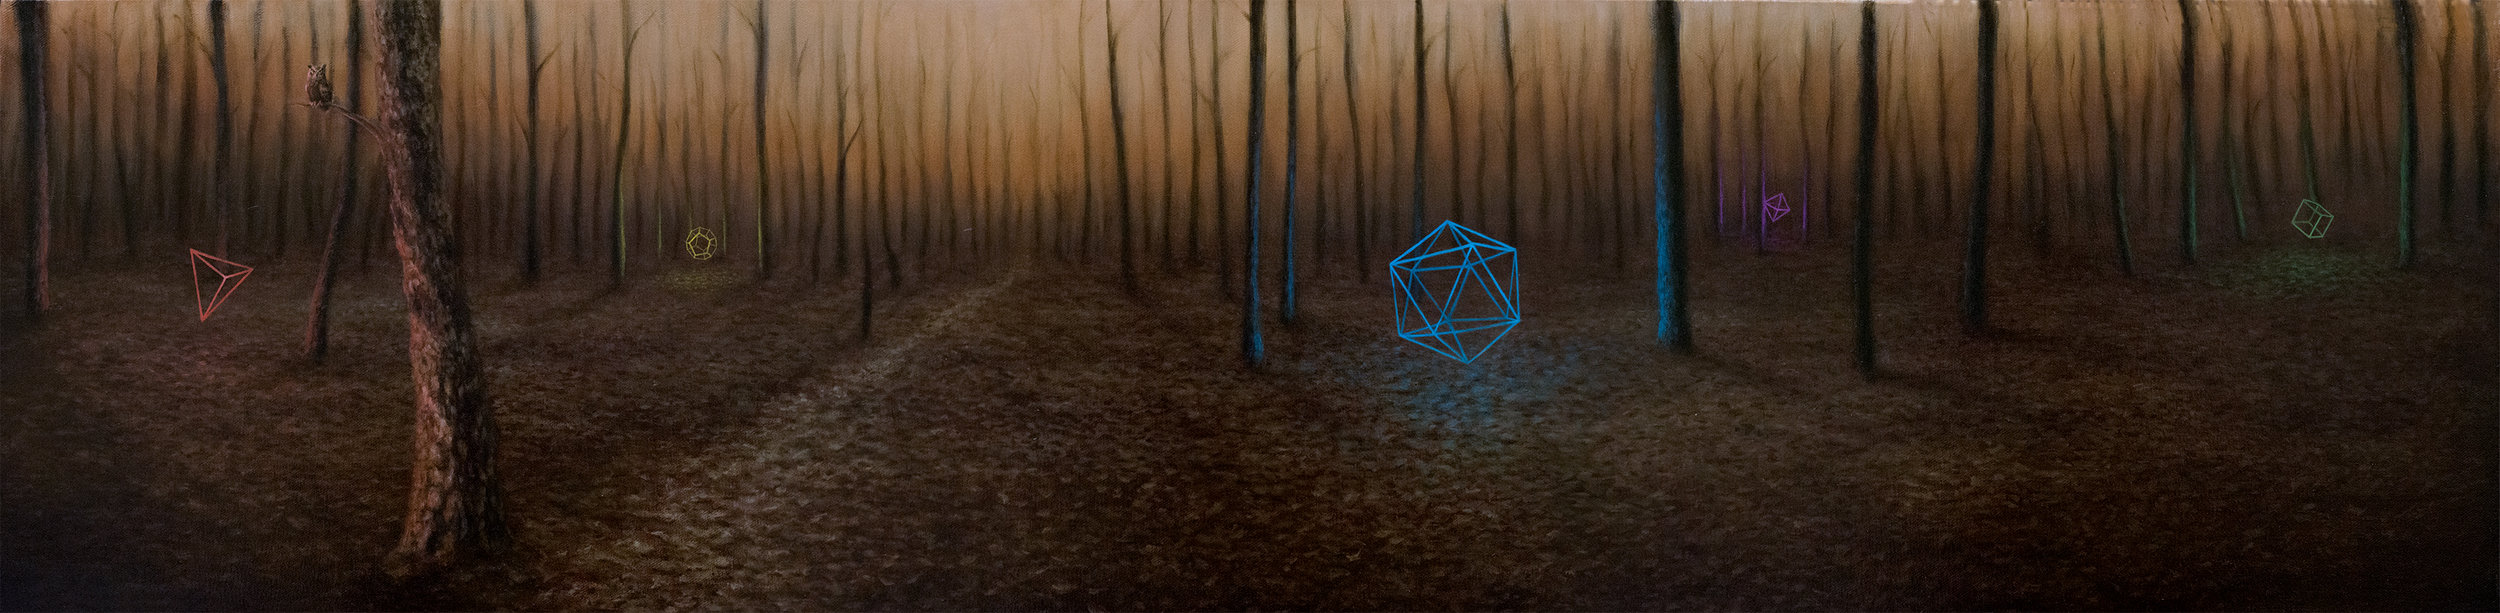 Forest (160 x 40cm) Oil on Canvas